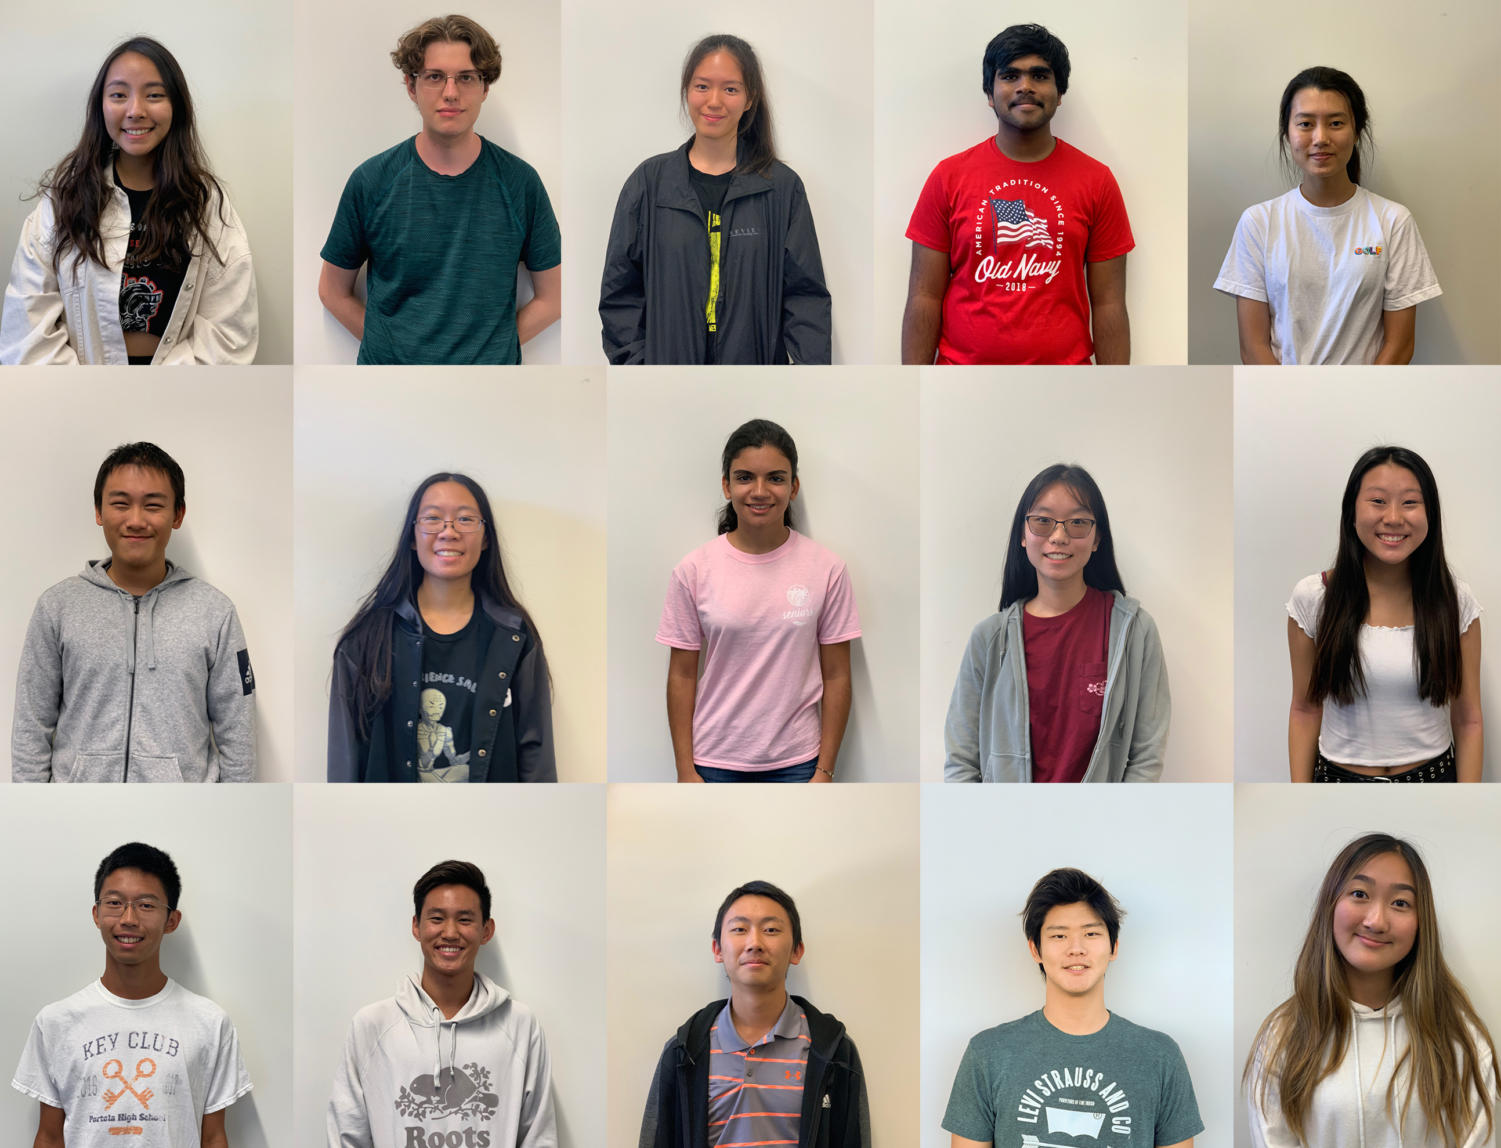 Stephanie Tang, Nicholas Delianedis, Grace Tu, Nishad Francis, Esther Jung, Joyee Chen, Angelica Chi, Dorsa Zahedi, Tianxin Guo, Stephanie Zhang, Xian Lun Zeng, Jason Chen, Andrew Wang, David Jang and Annie Qiao were the highest-scoring students on campus in fall 2018.